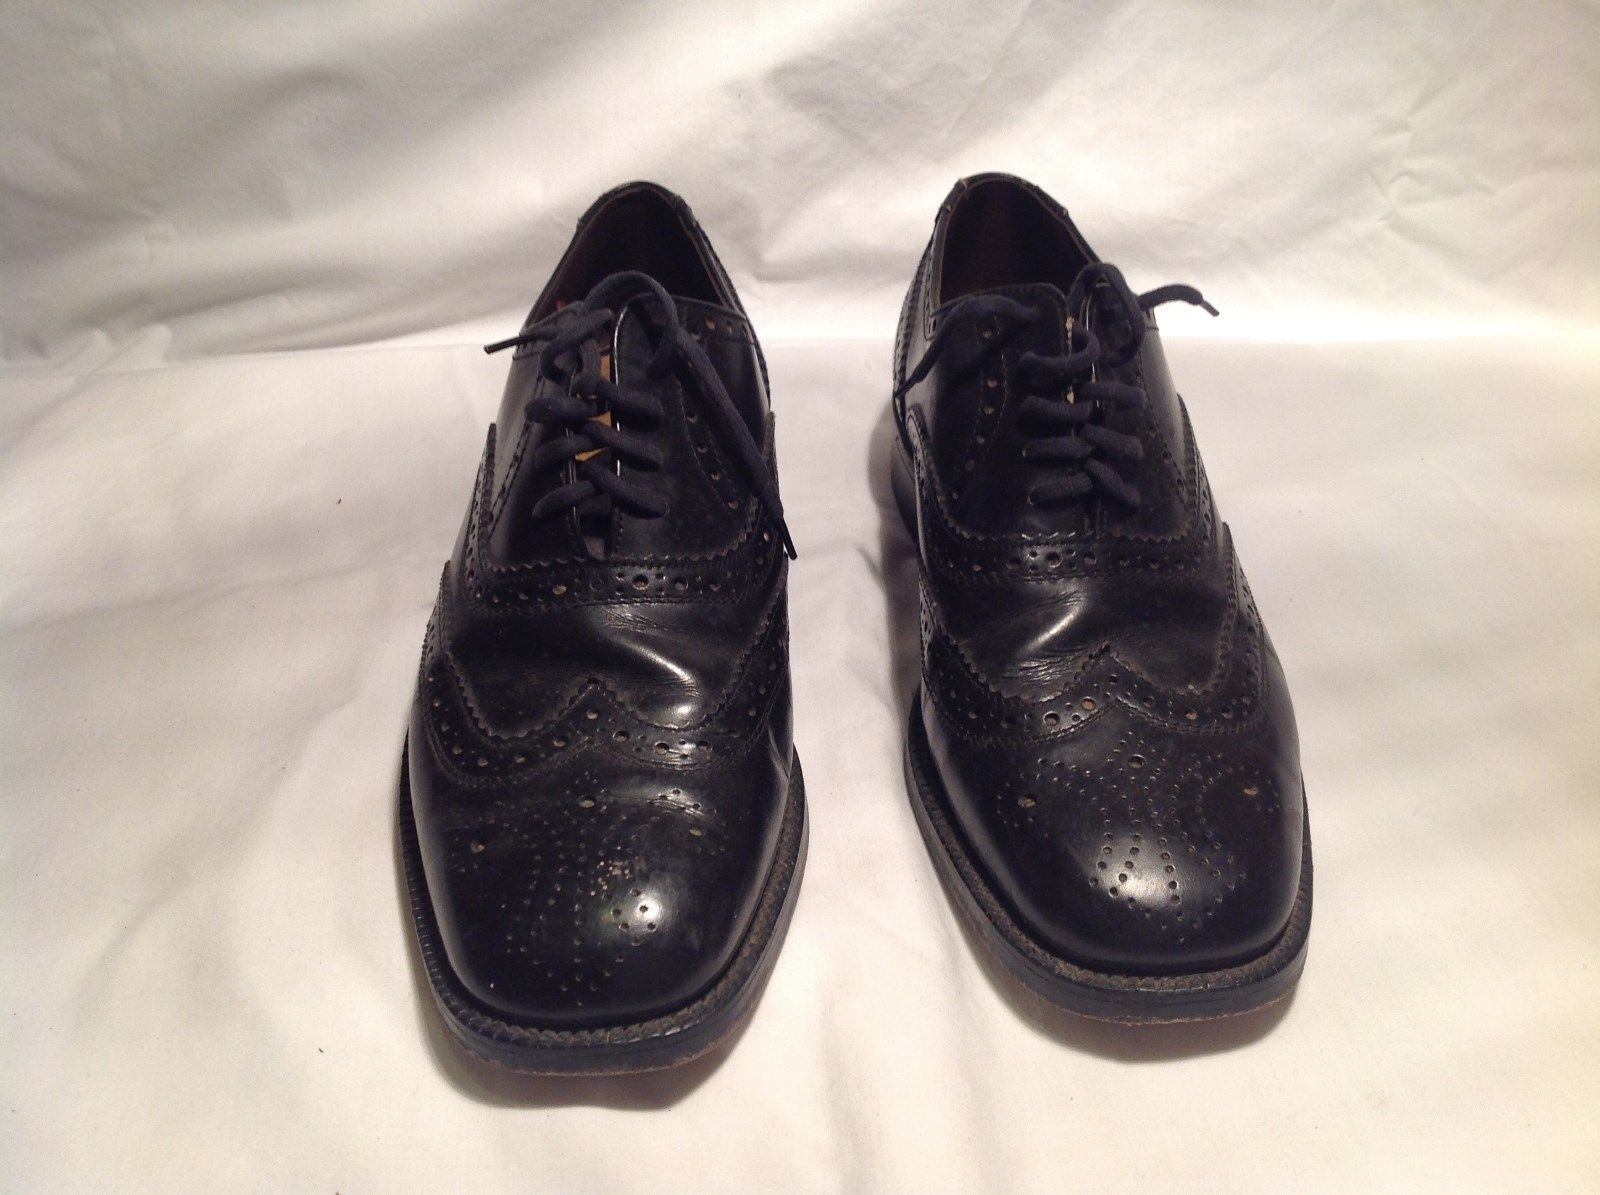 Patrons Black Leather Tie Dress Shoes Size 8 wing tip